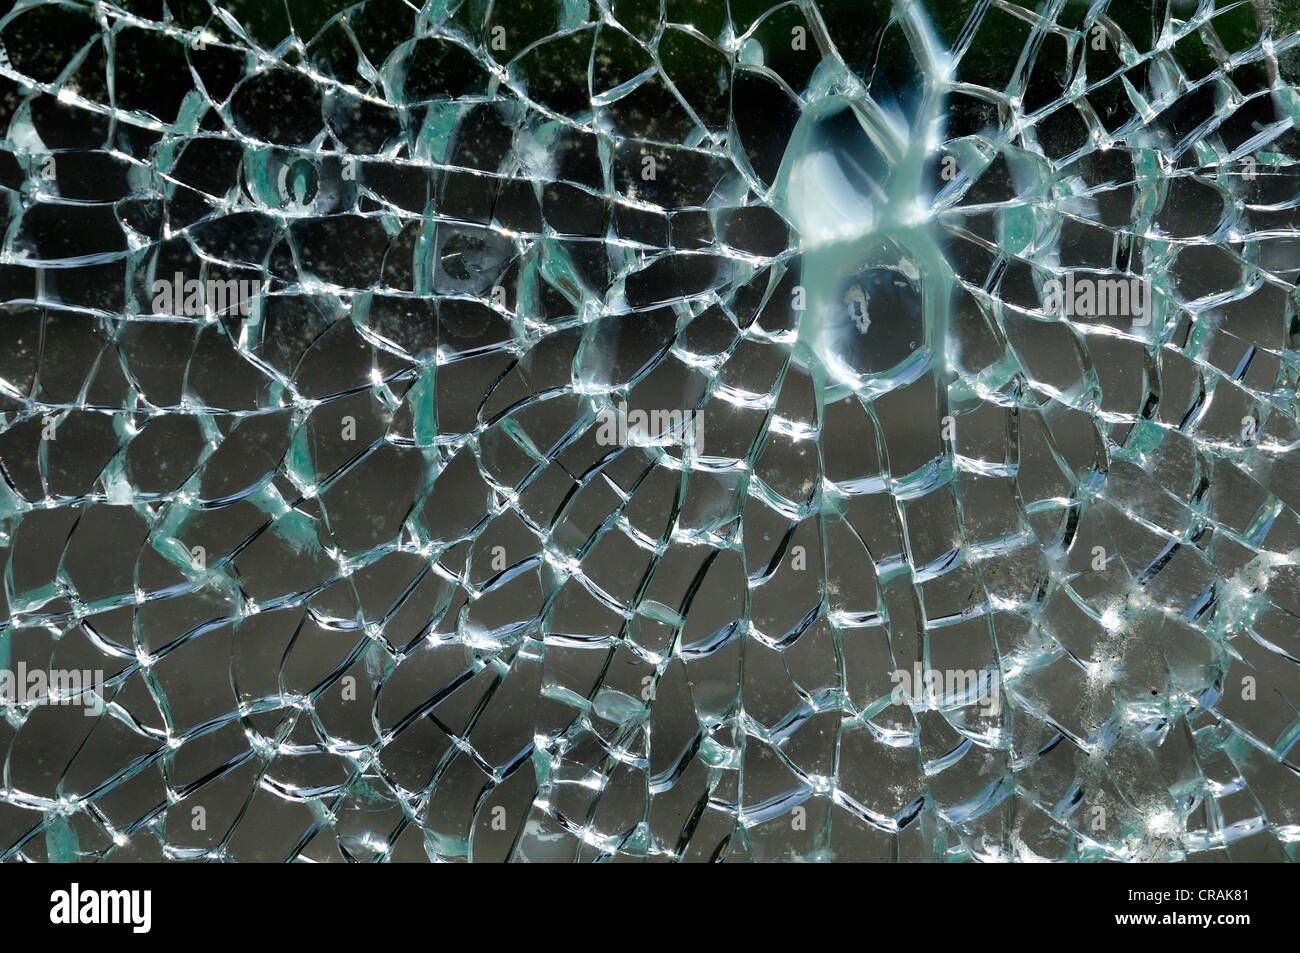 Shattered glass of a phone booth - Stock Image